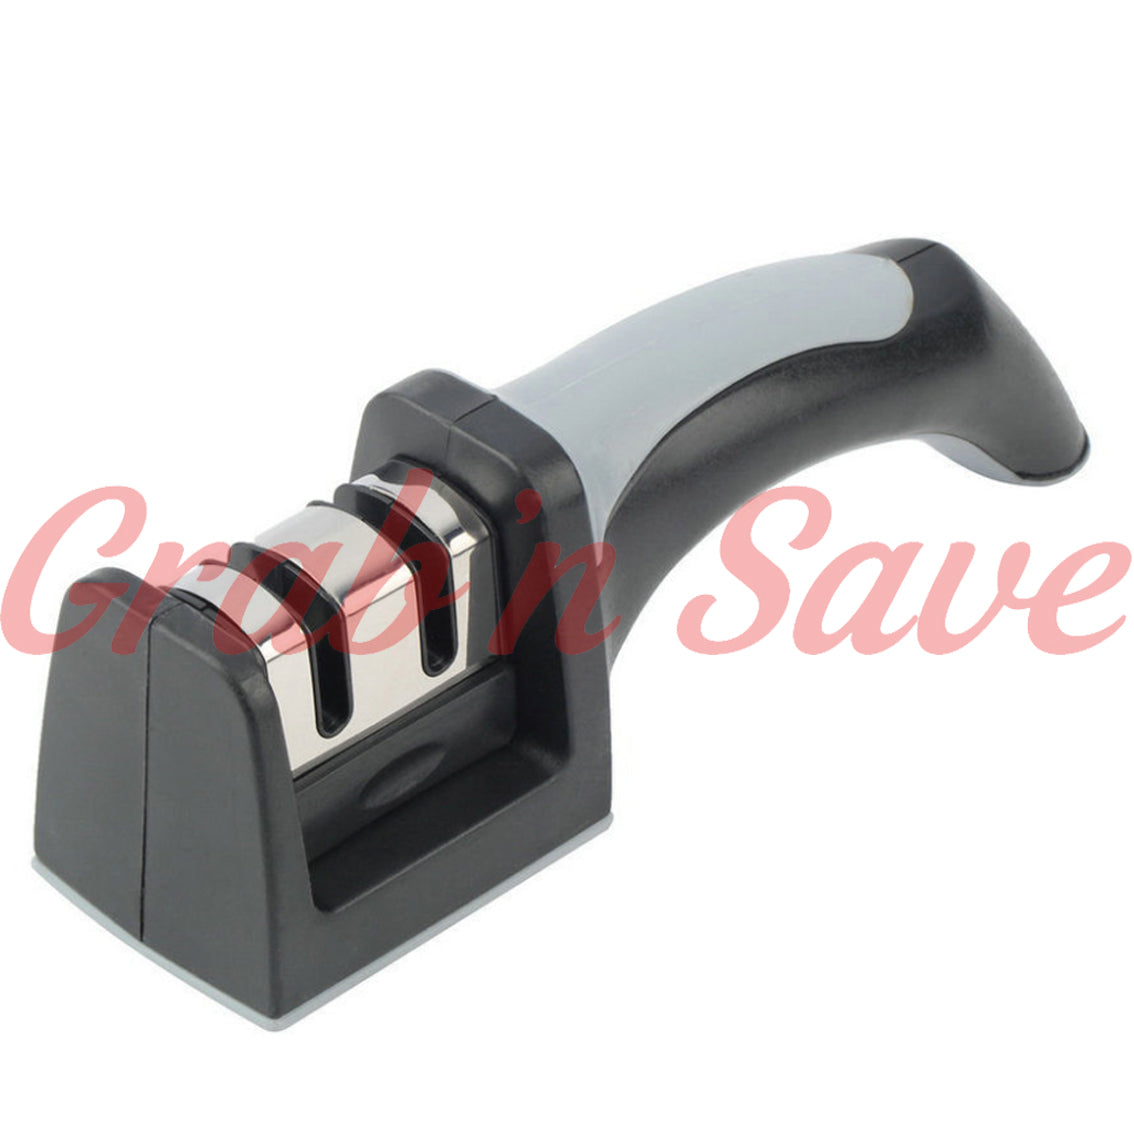 Knife Sharpener, Best Knife Sharpener, Professional Knife Sharpener